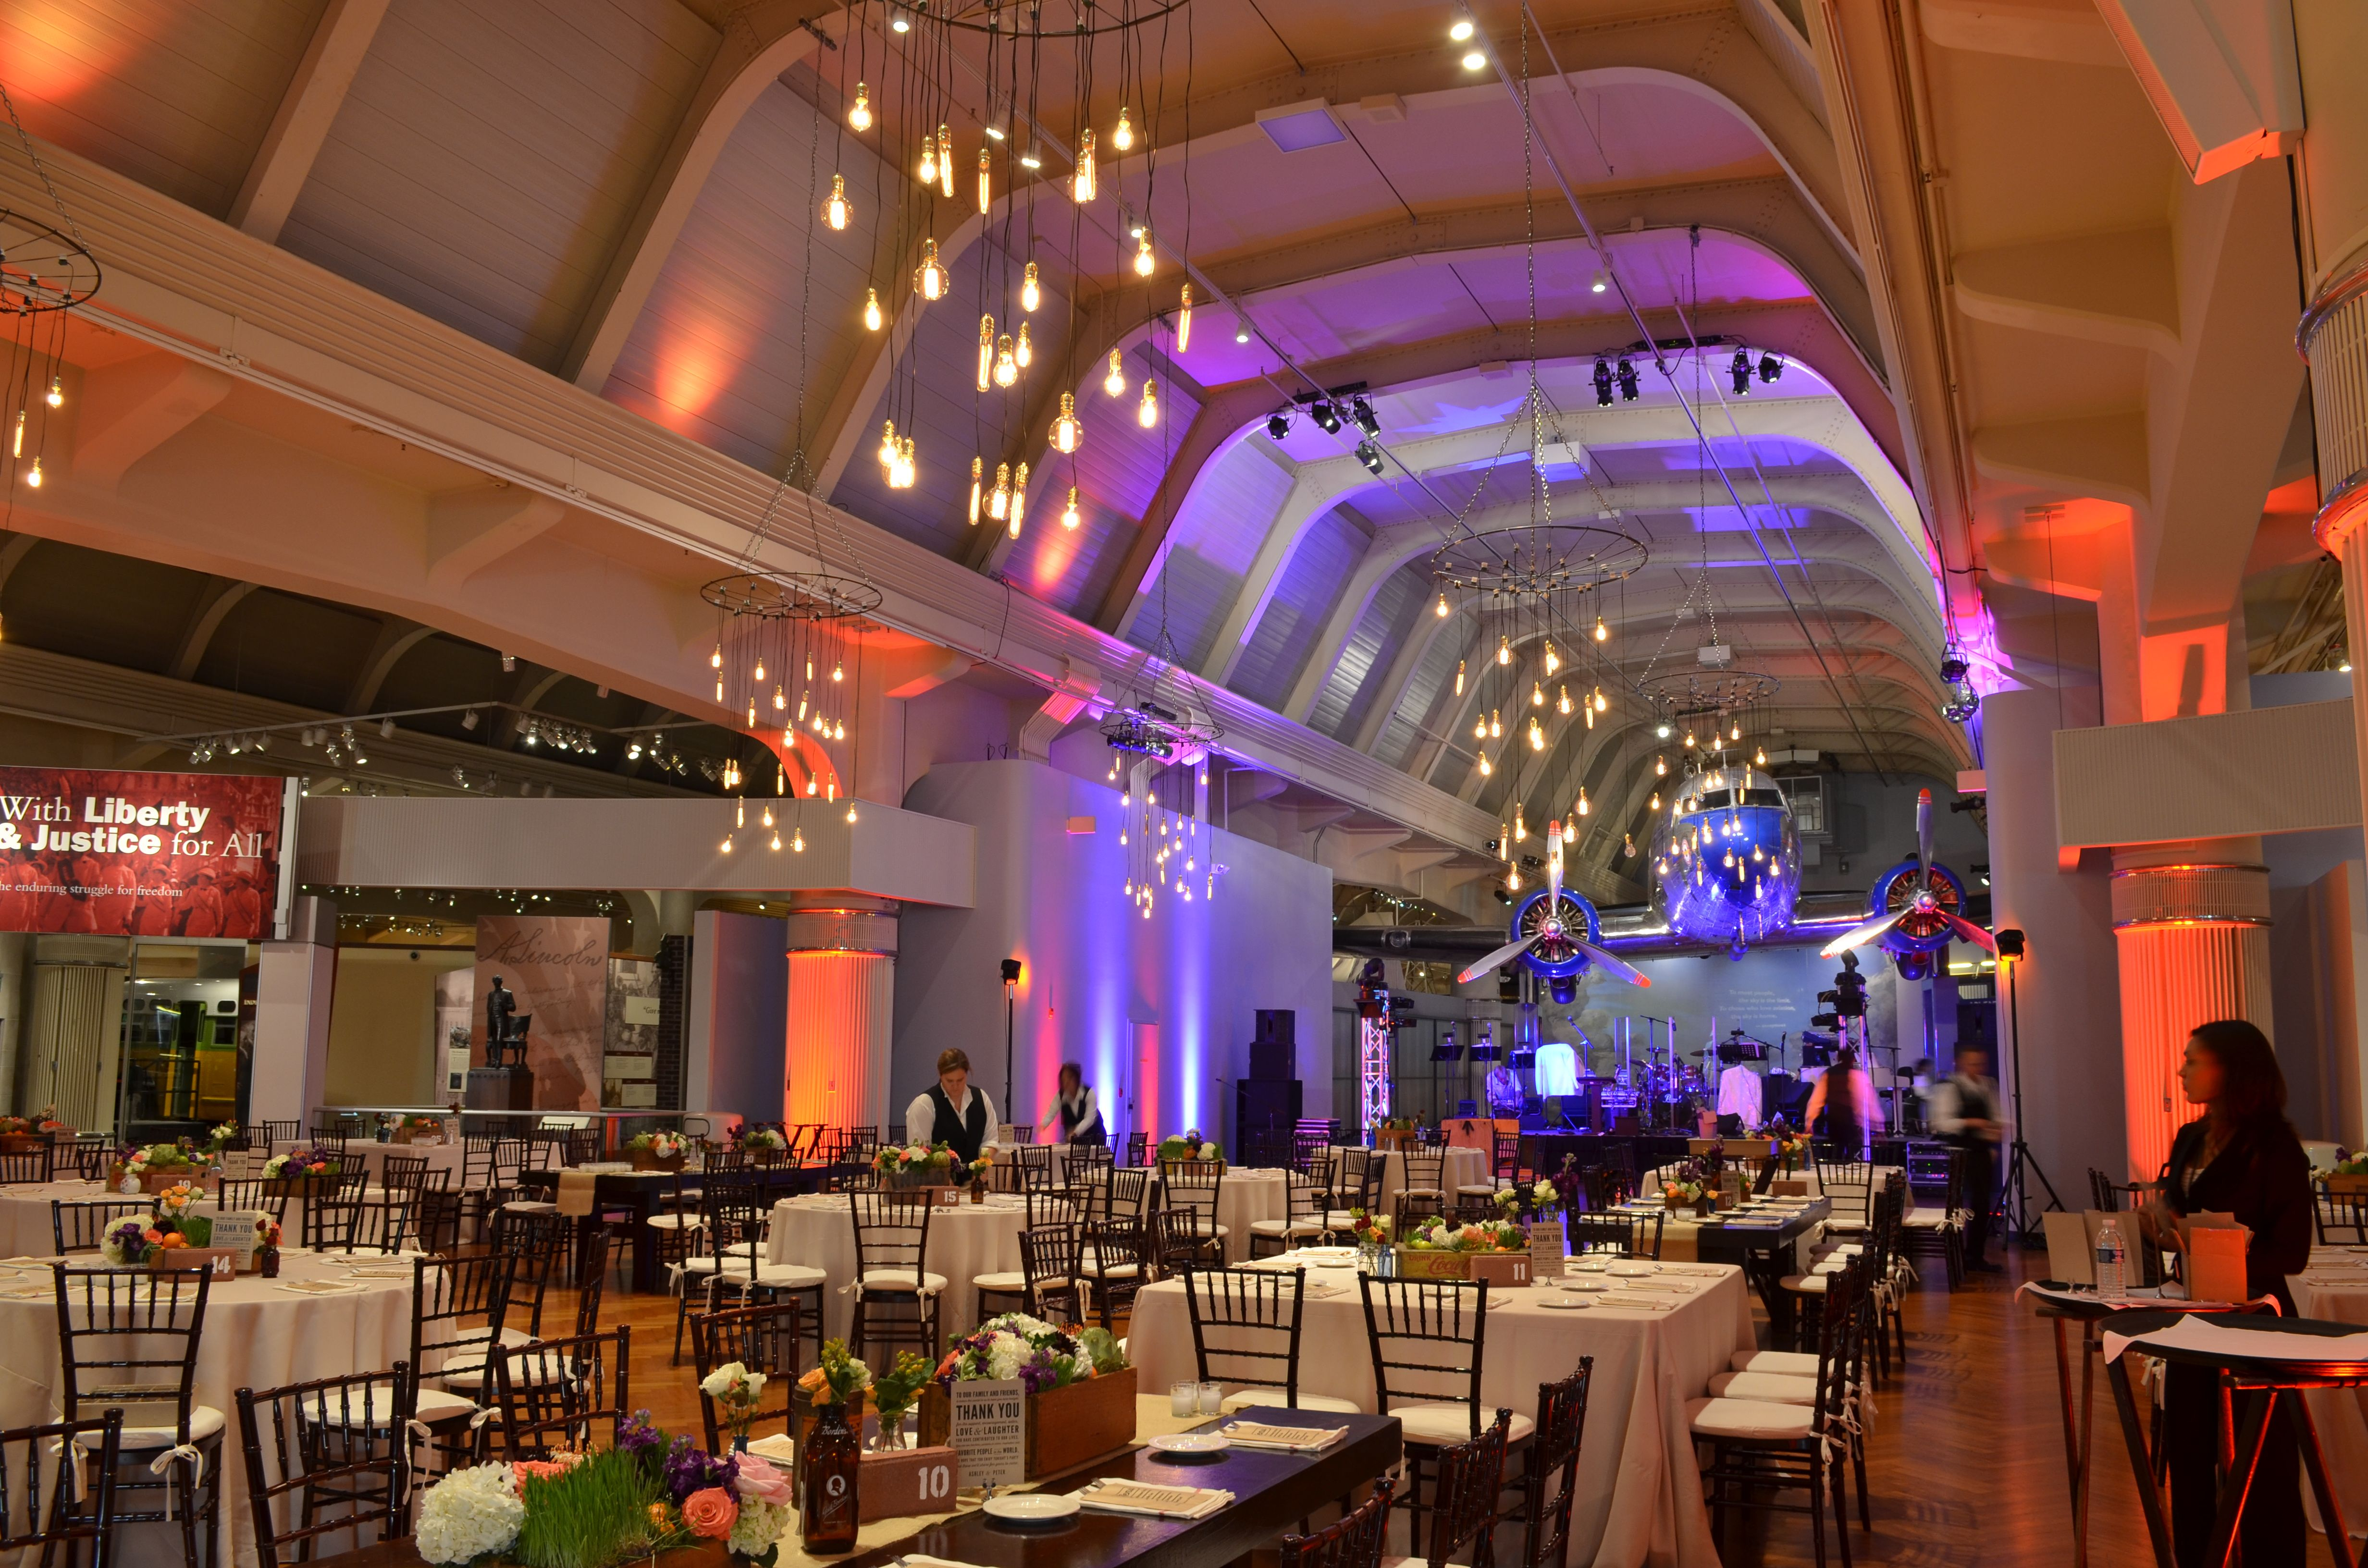 Custom Edison Bulb Chandeliers Hung From Henry Ford Museum S Ceilings